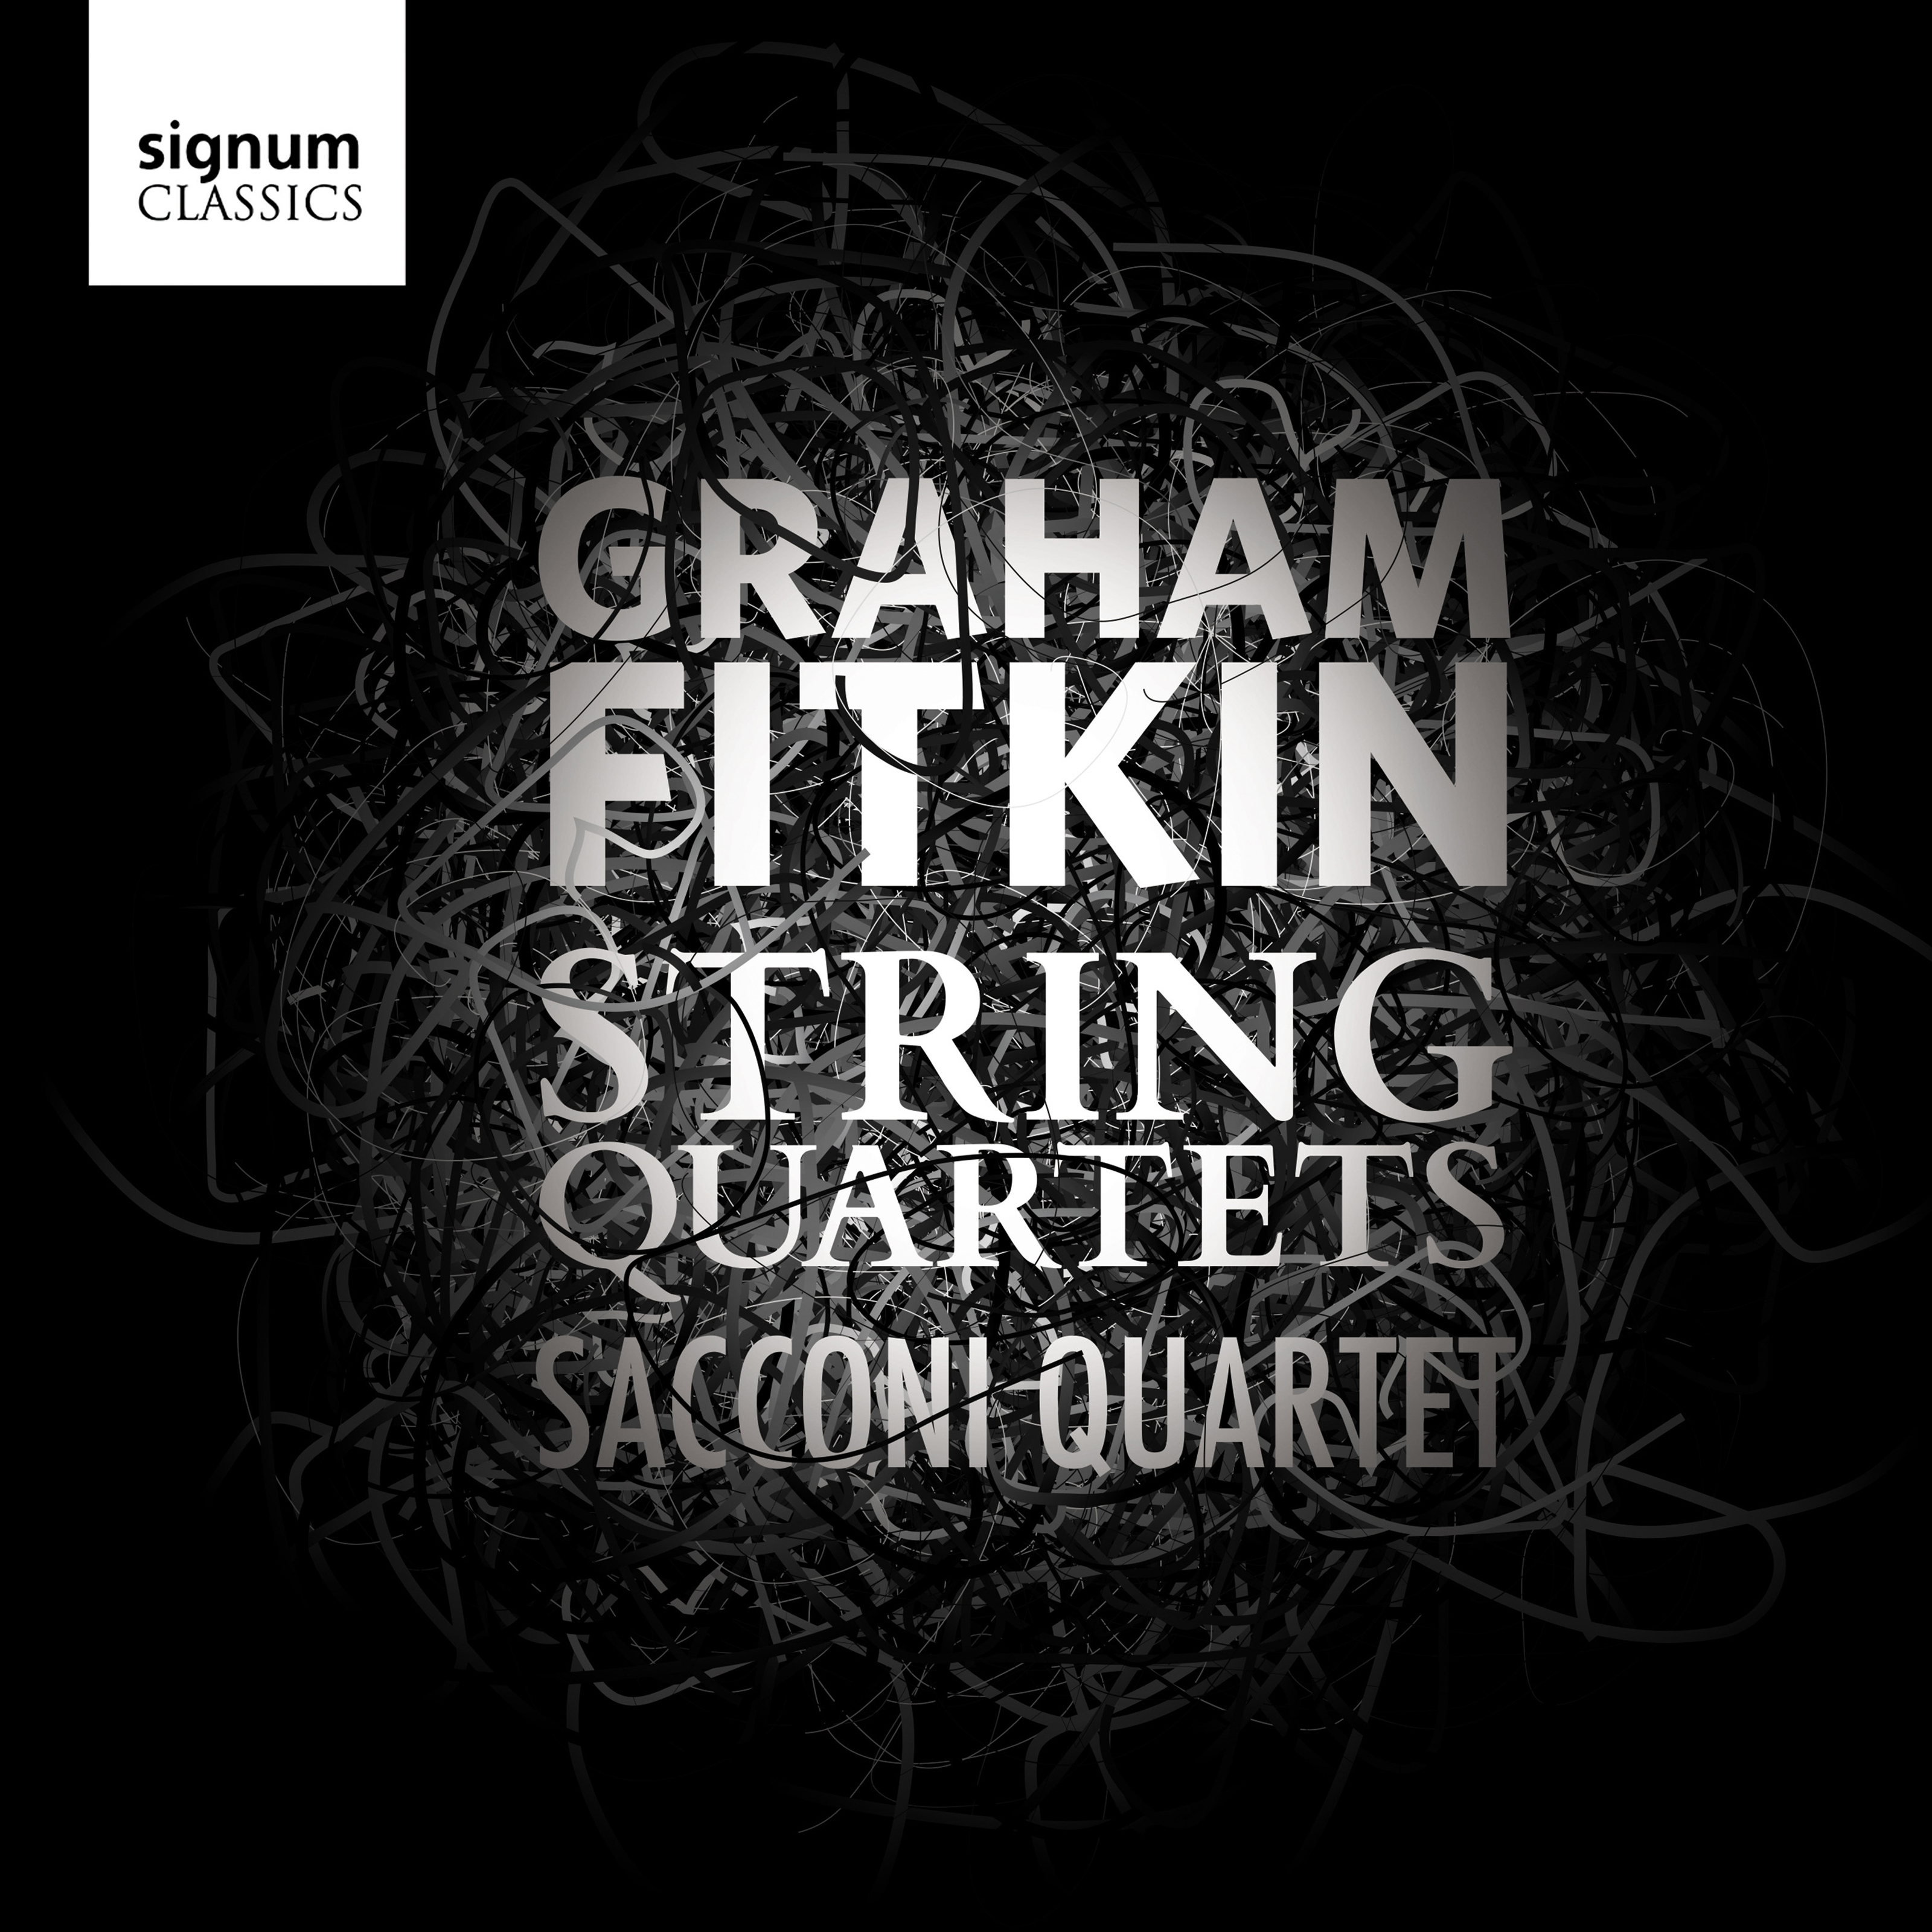 Fitkin: String Quartets